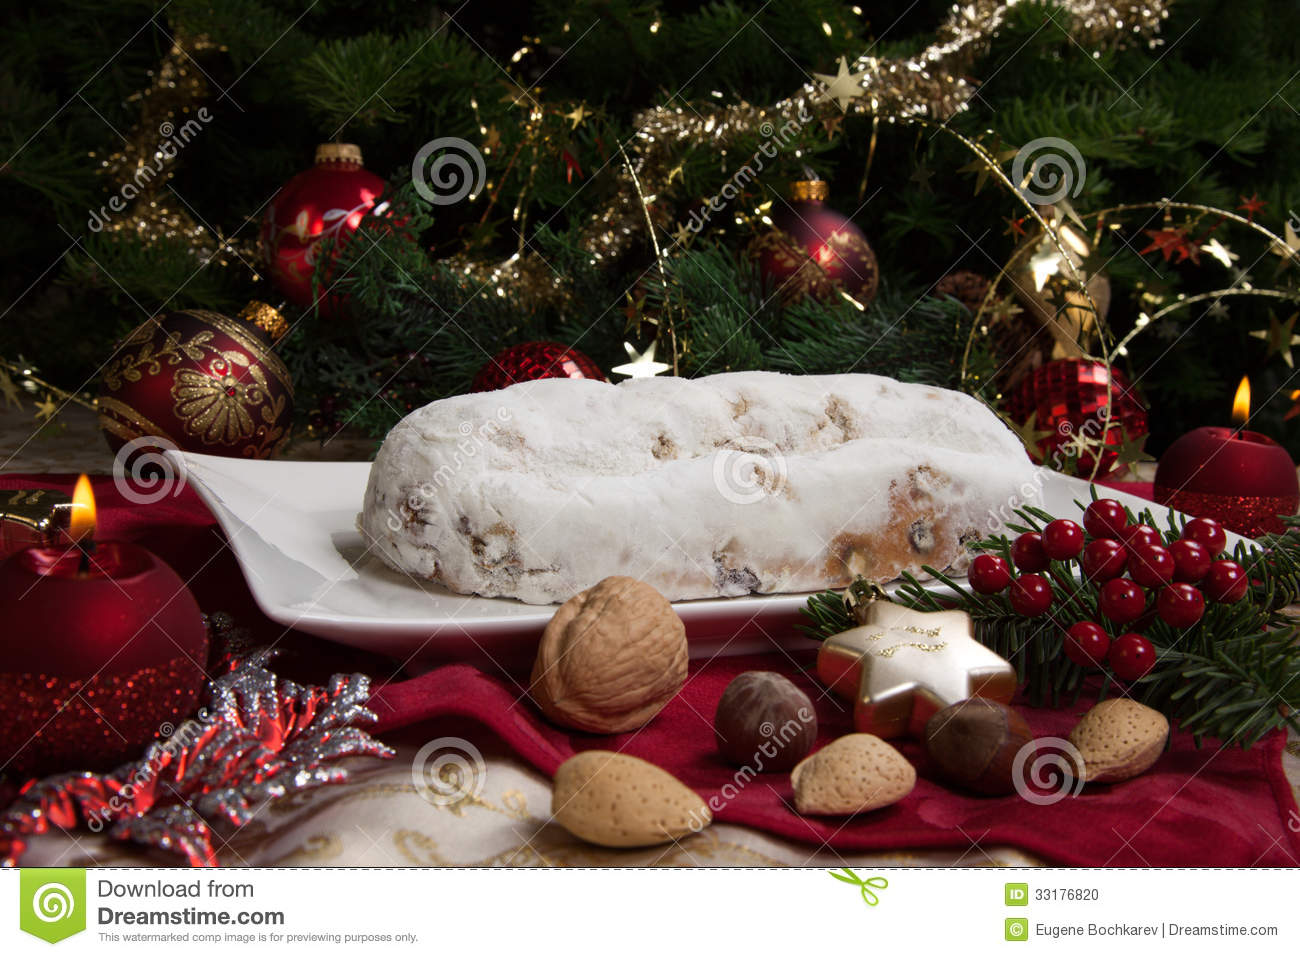 Stollen For Christmas Stock Photo - Image: 33176820